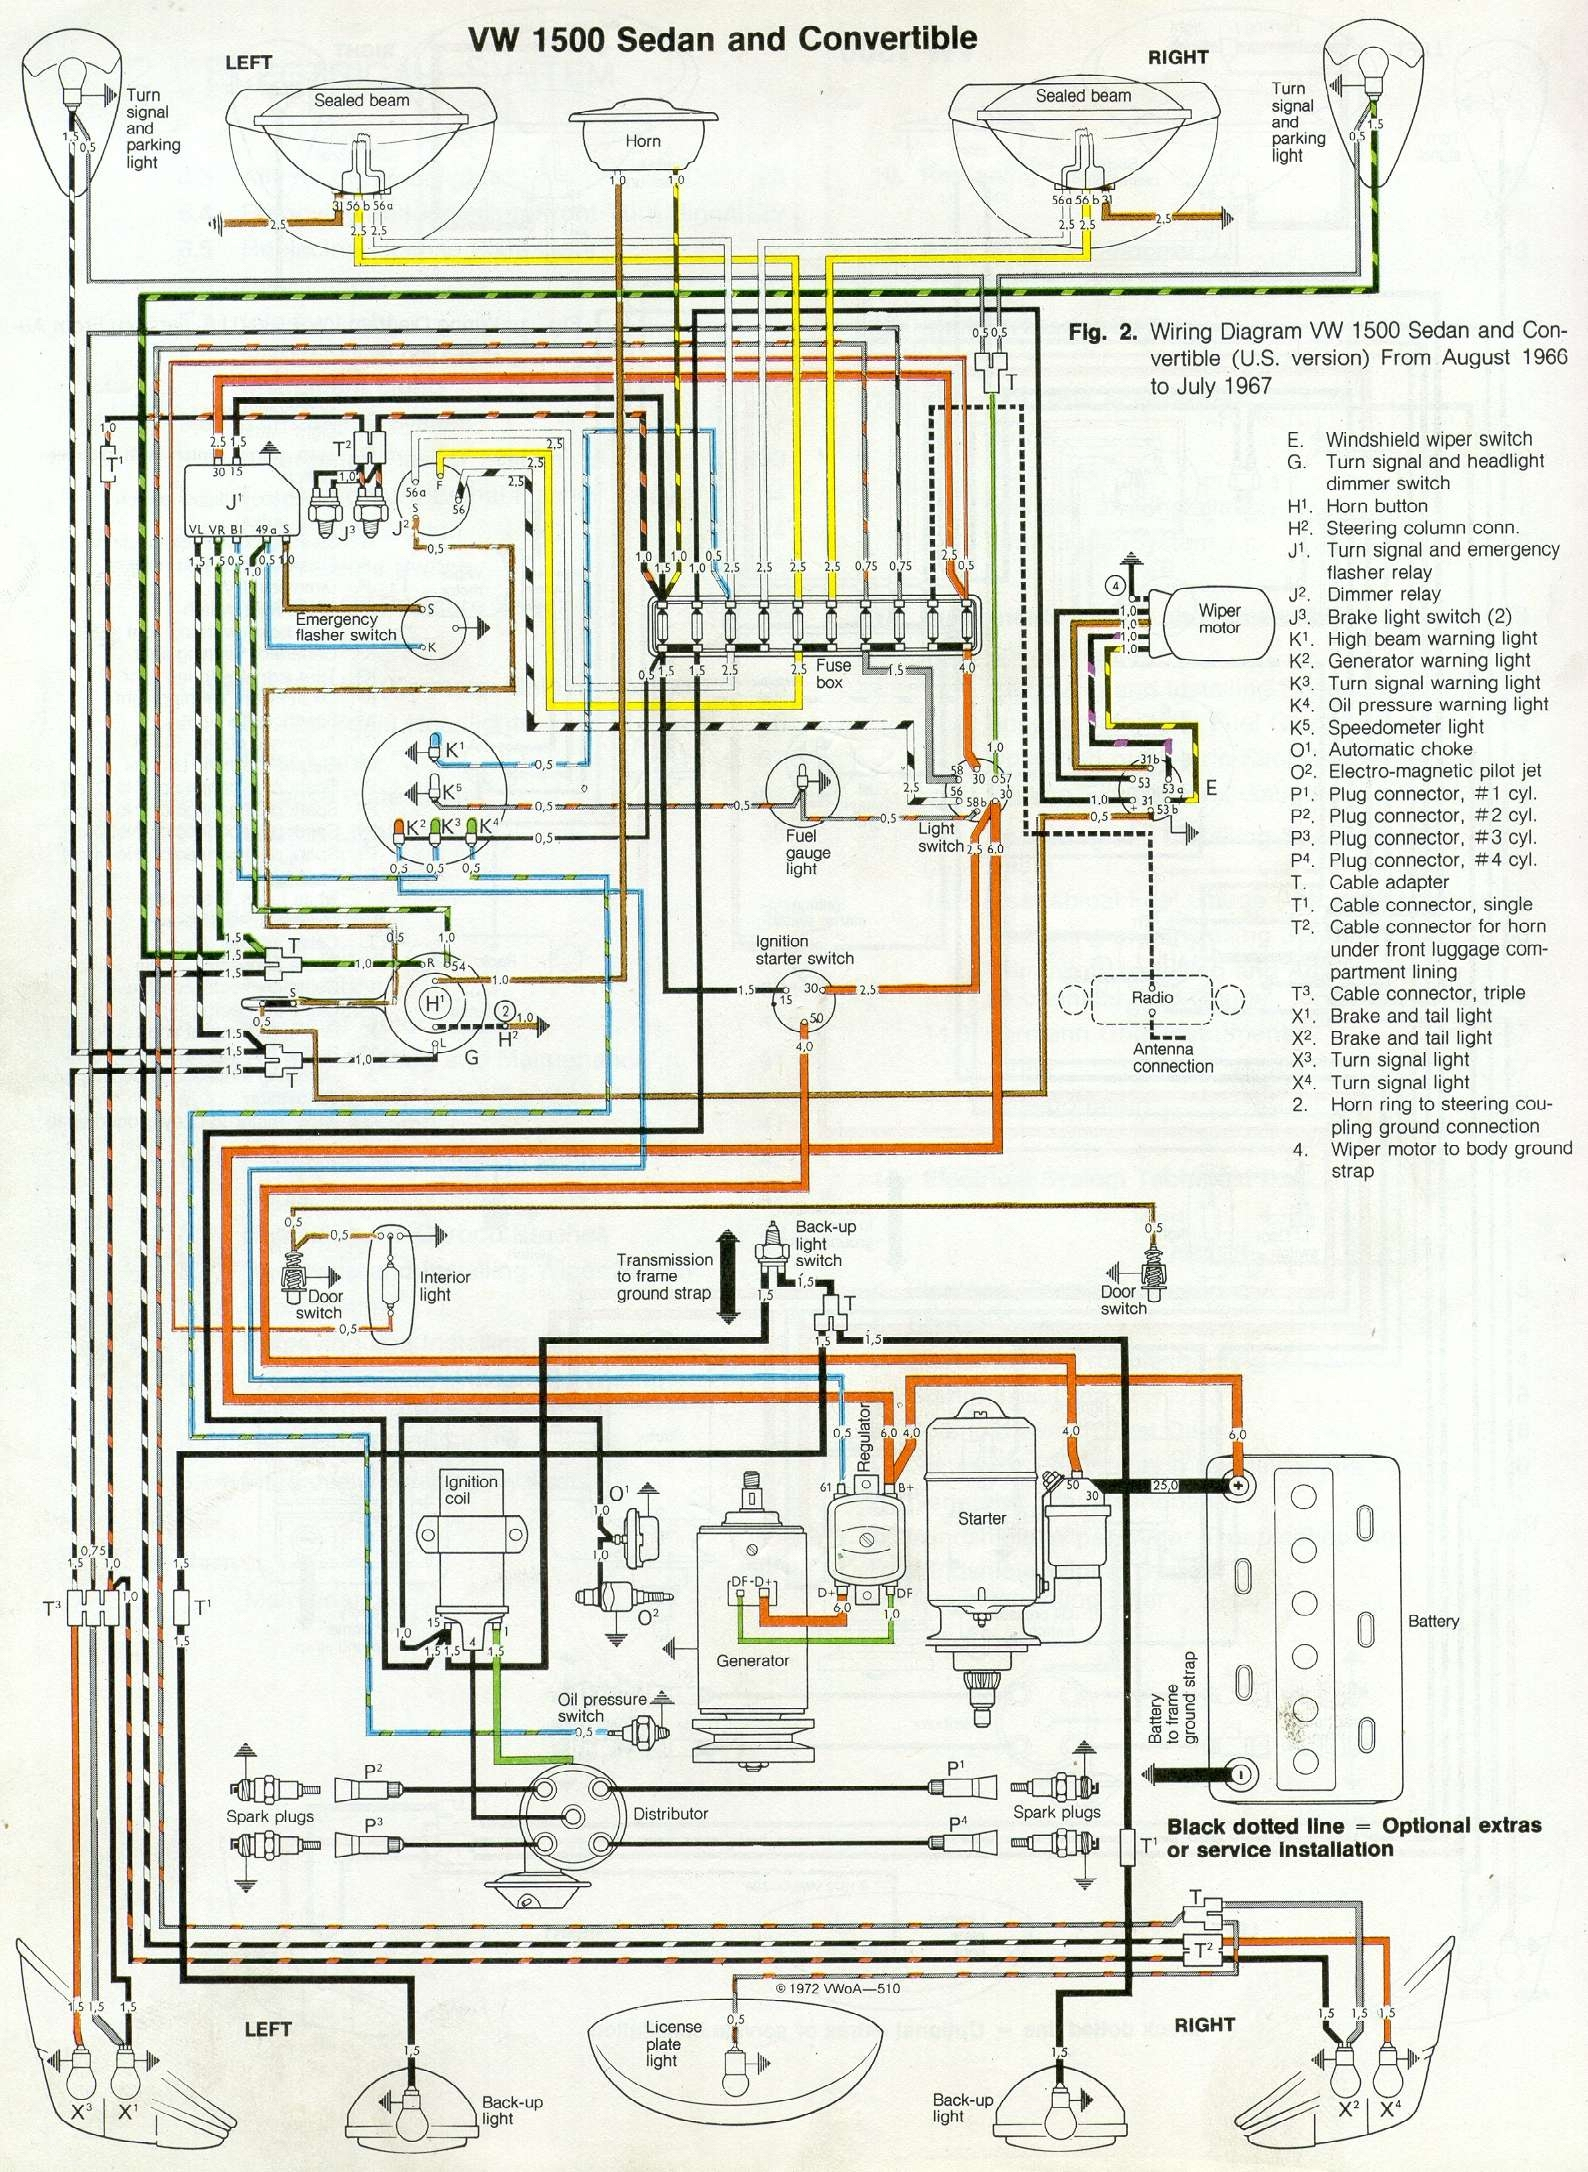 vw beetle wiring example electrical wiring diagram u2022 rh cranejapan co 1969 VW Beetle Wiring Diagram 1960 VW Beetle Wiring Diagram